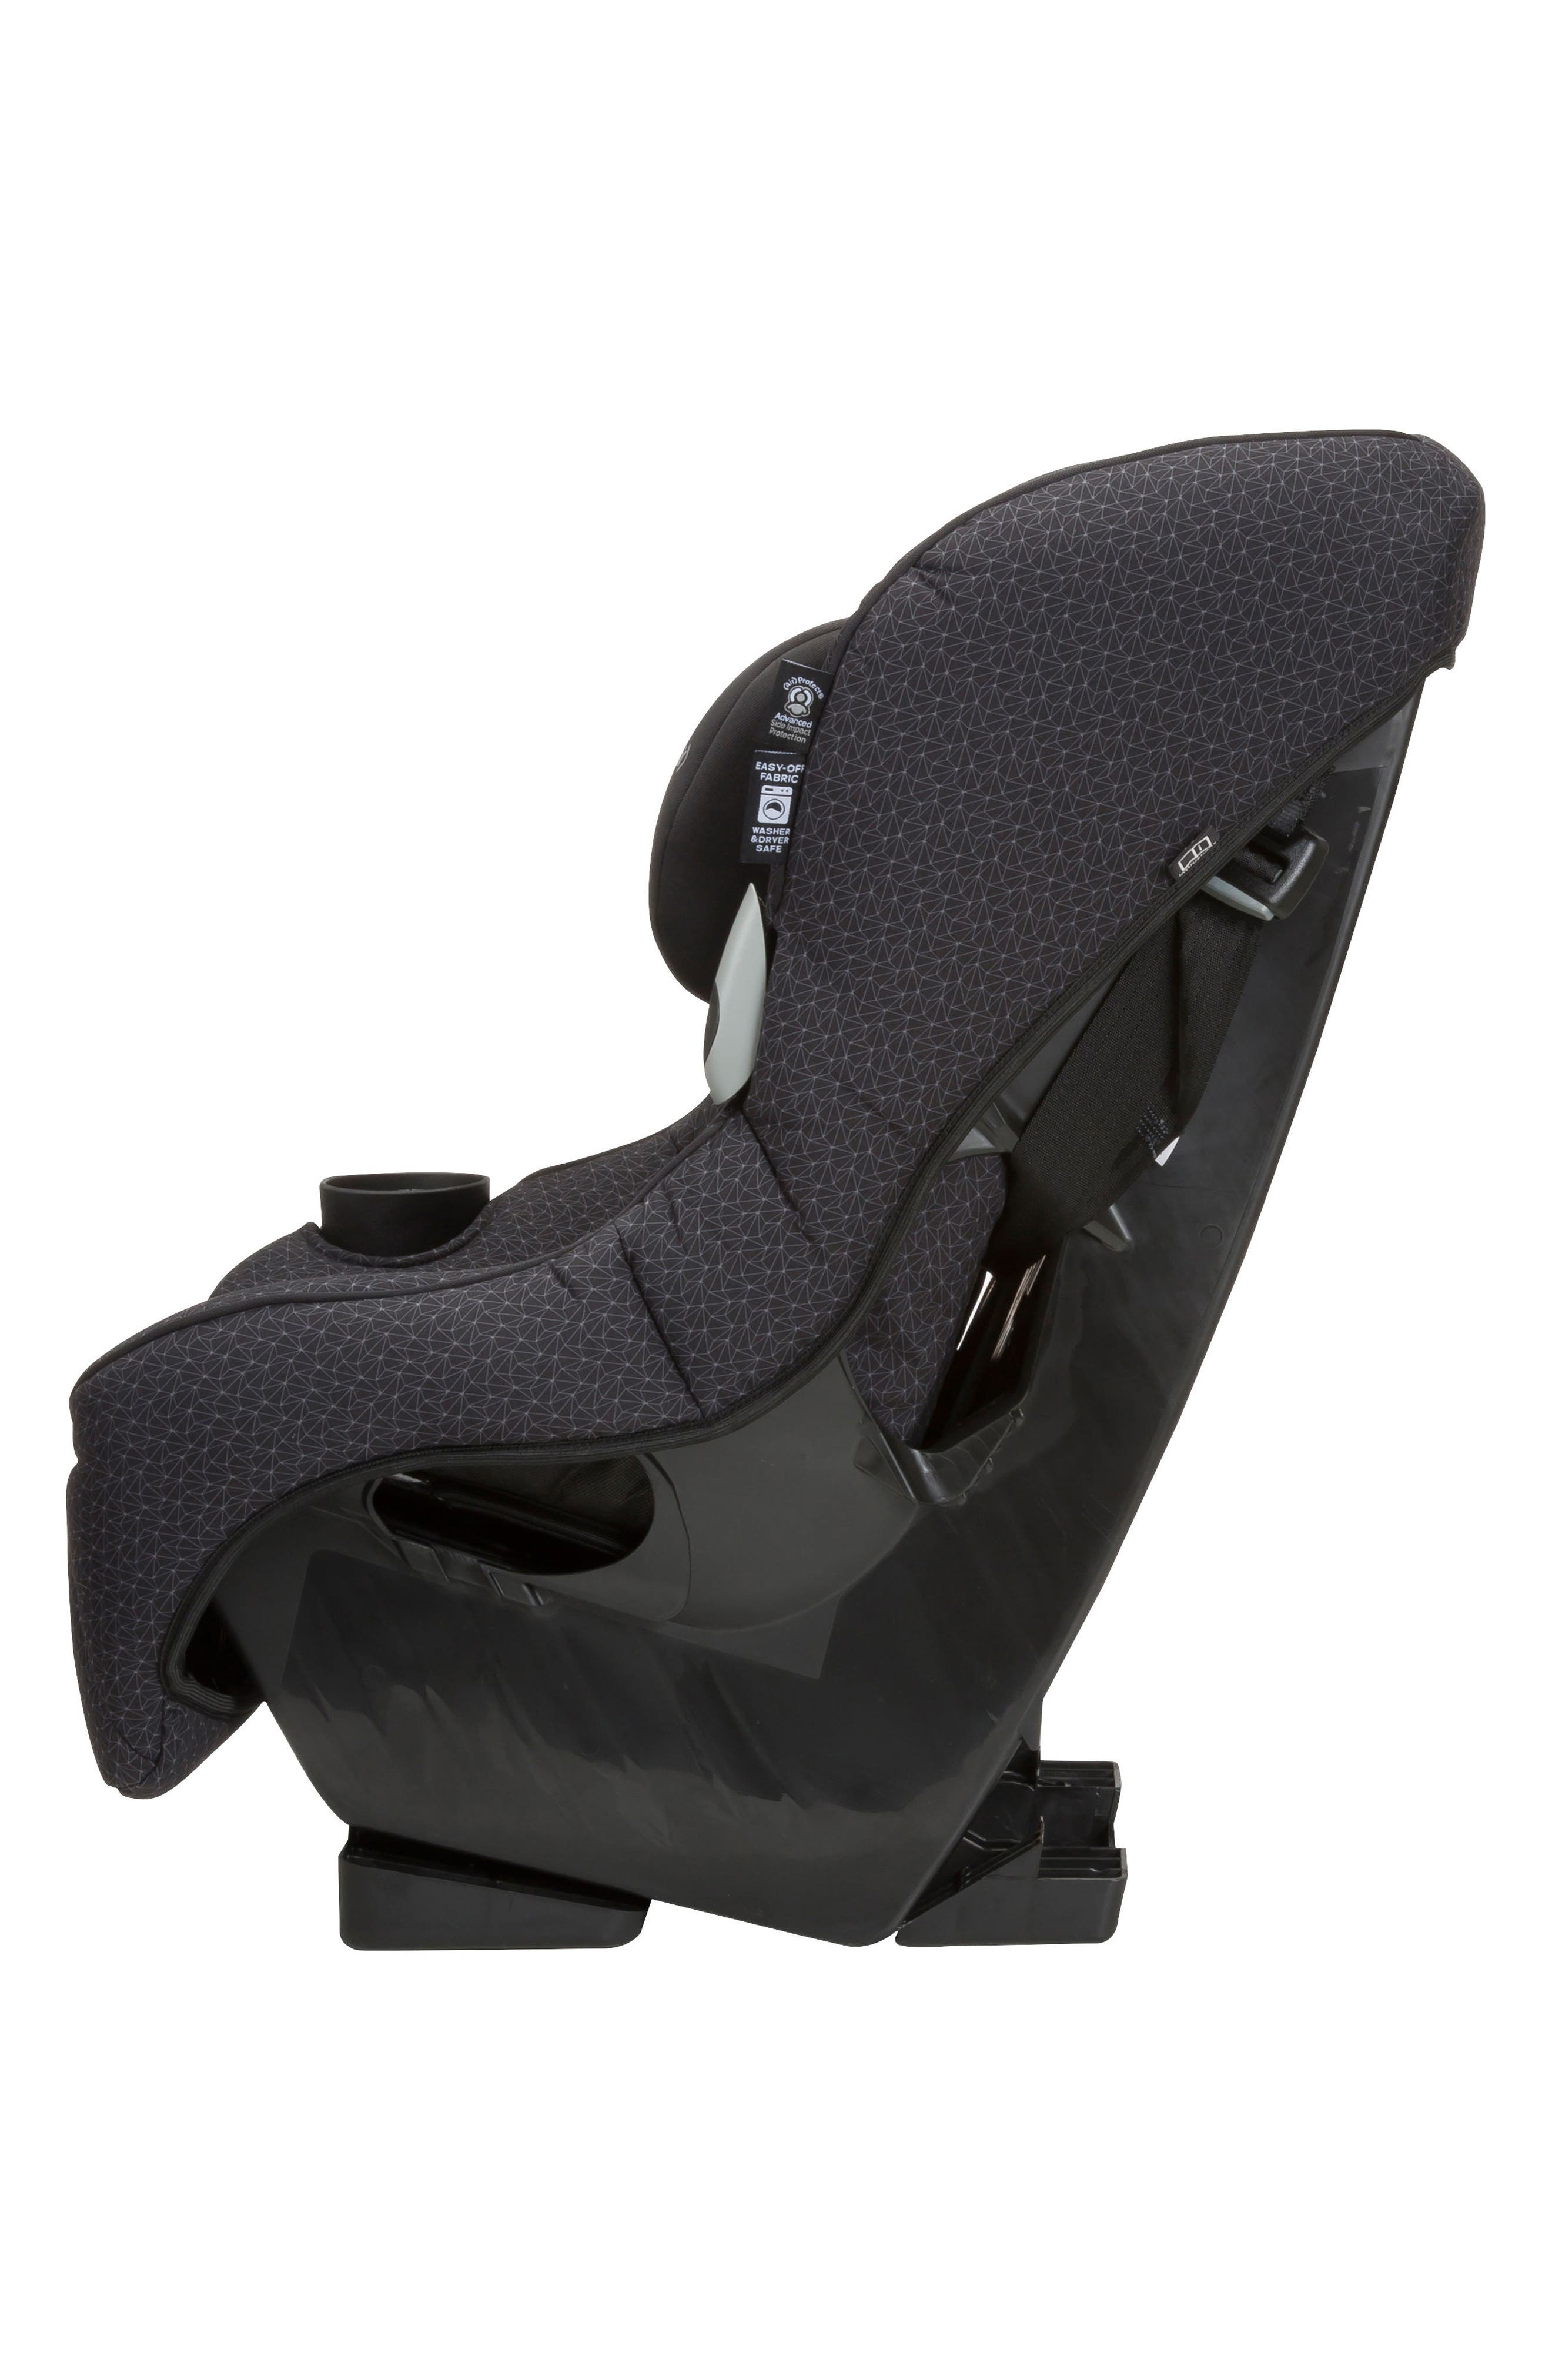 Pria<sup>™</sup> 85 Black Crystal Special Edition Car Seat,                             Alternate thumbnail 2, color,                             Black